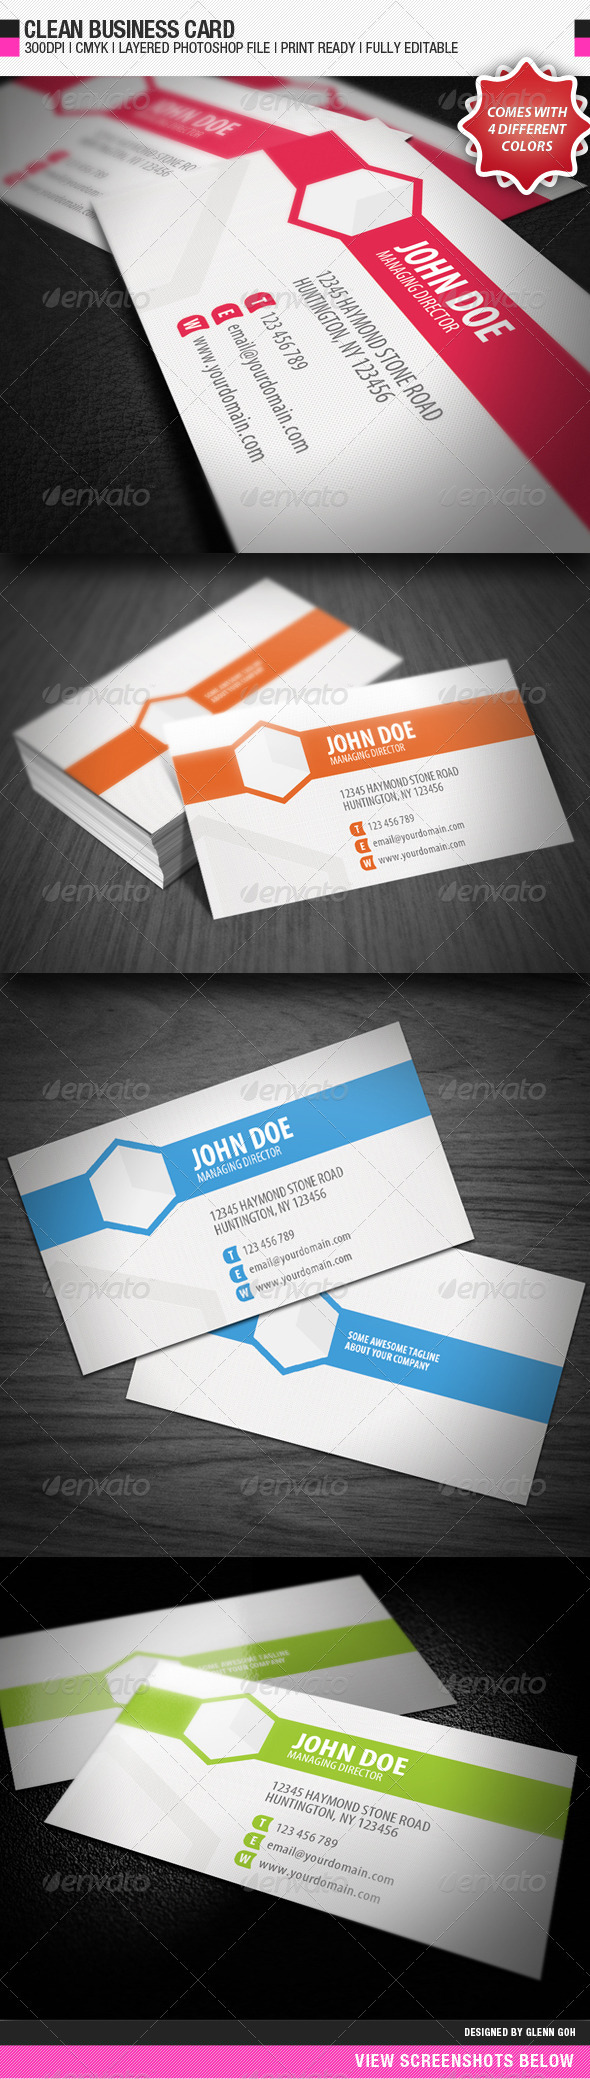 Clean Business Card - Business Cards Print Templates